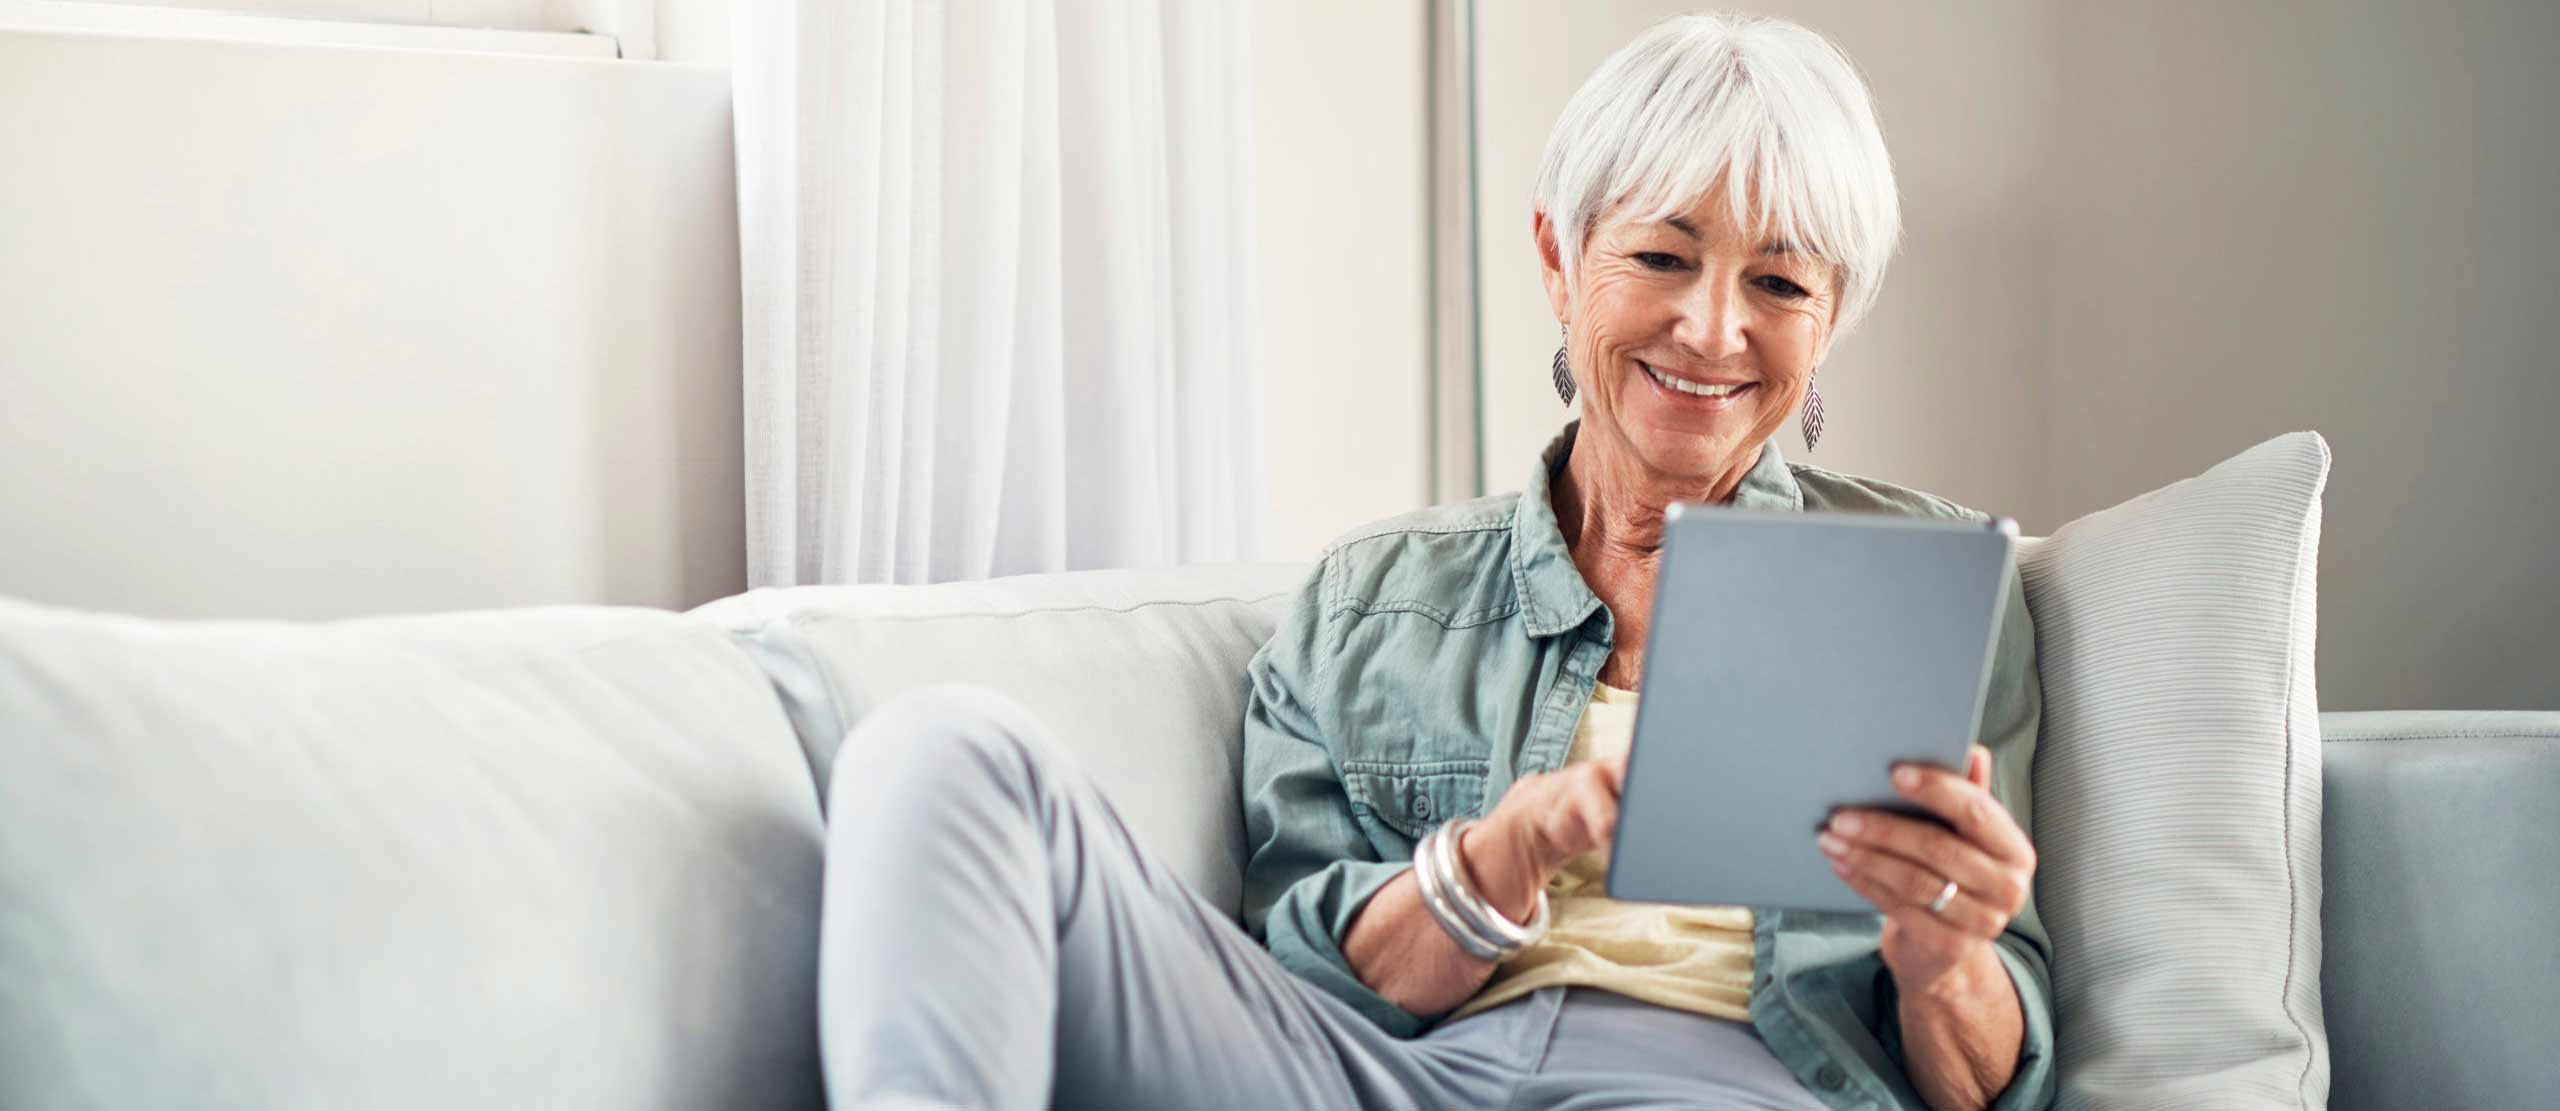 Senior woman using tablet while sitting on couch